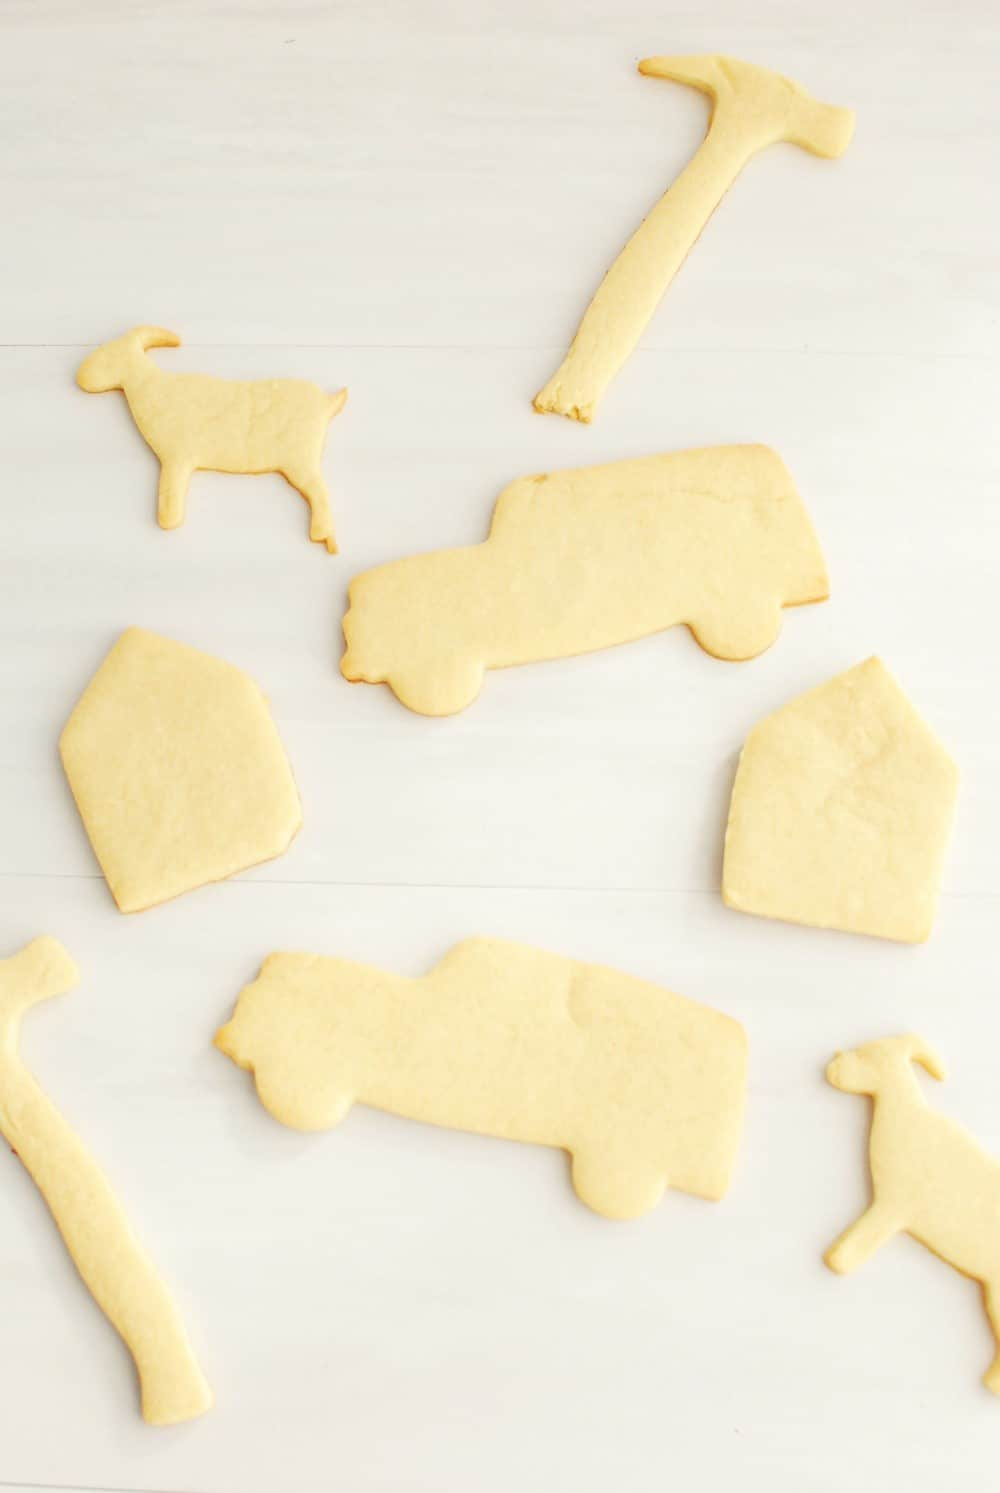 Dairy free sugar cookies in various shapes